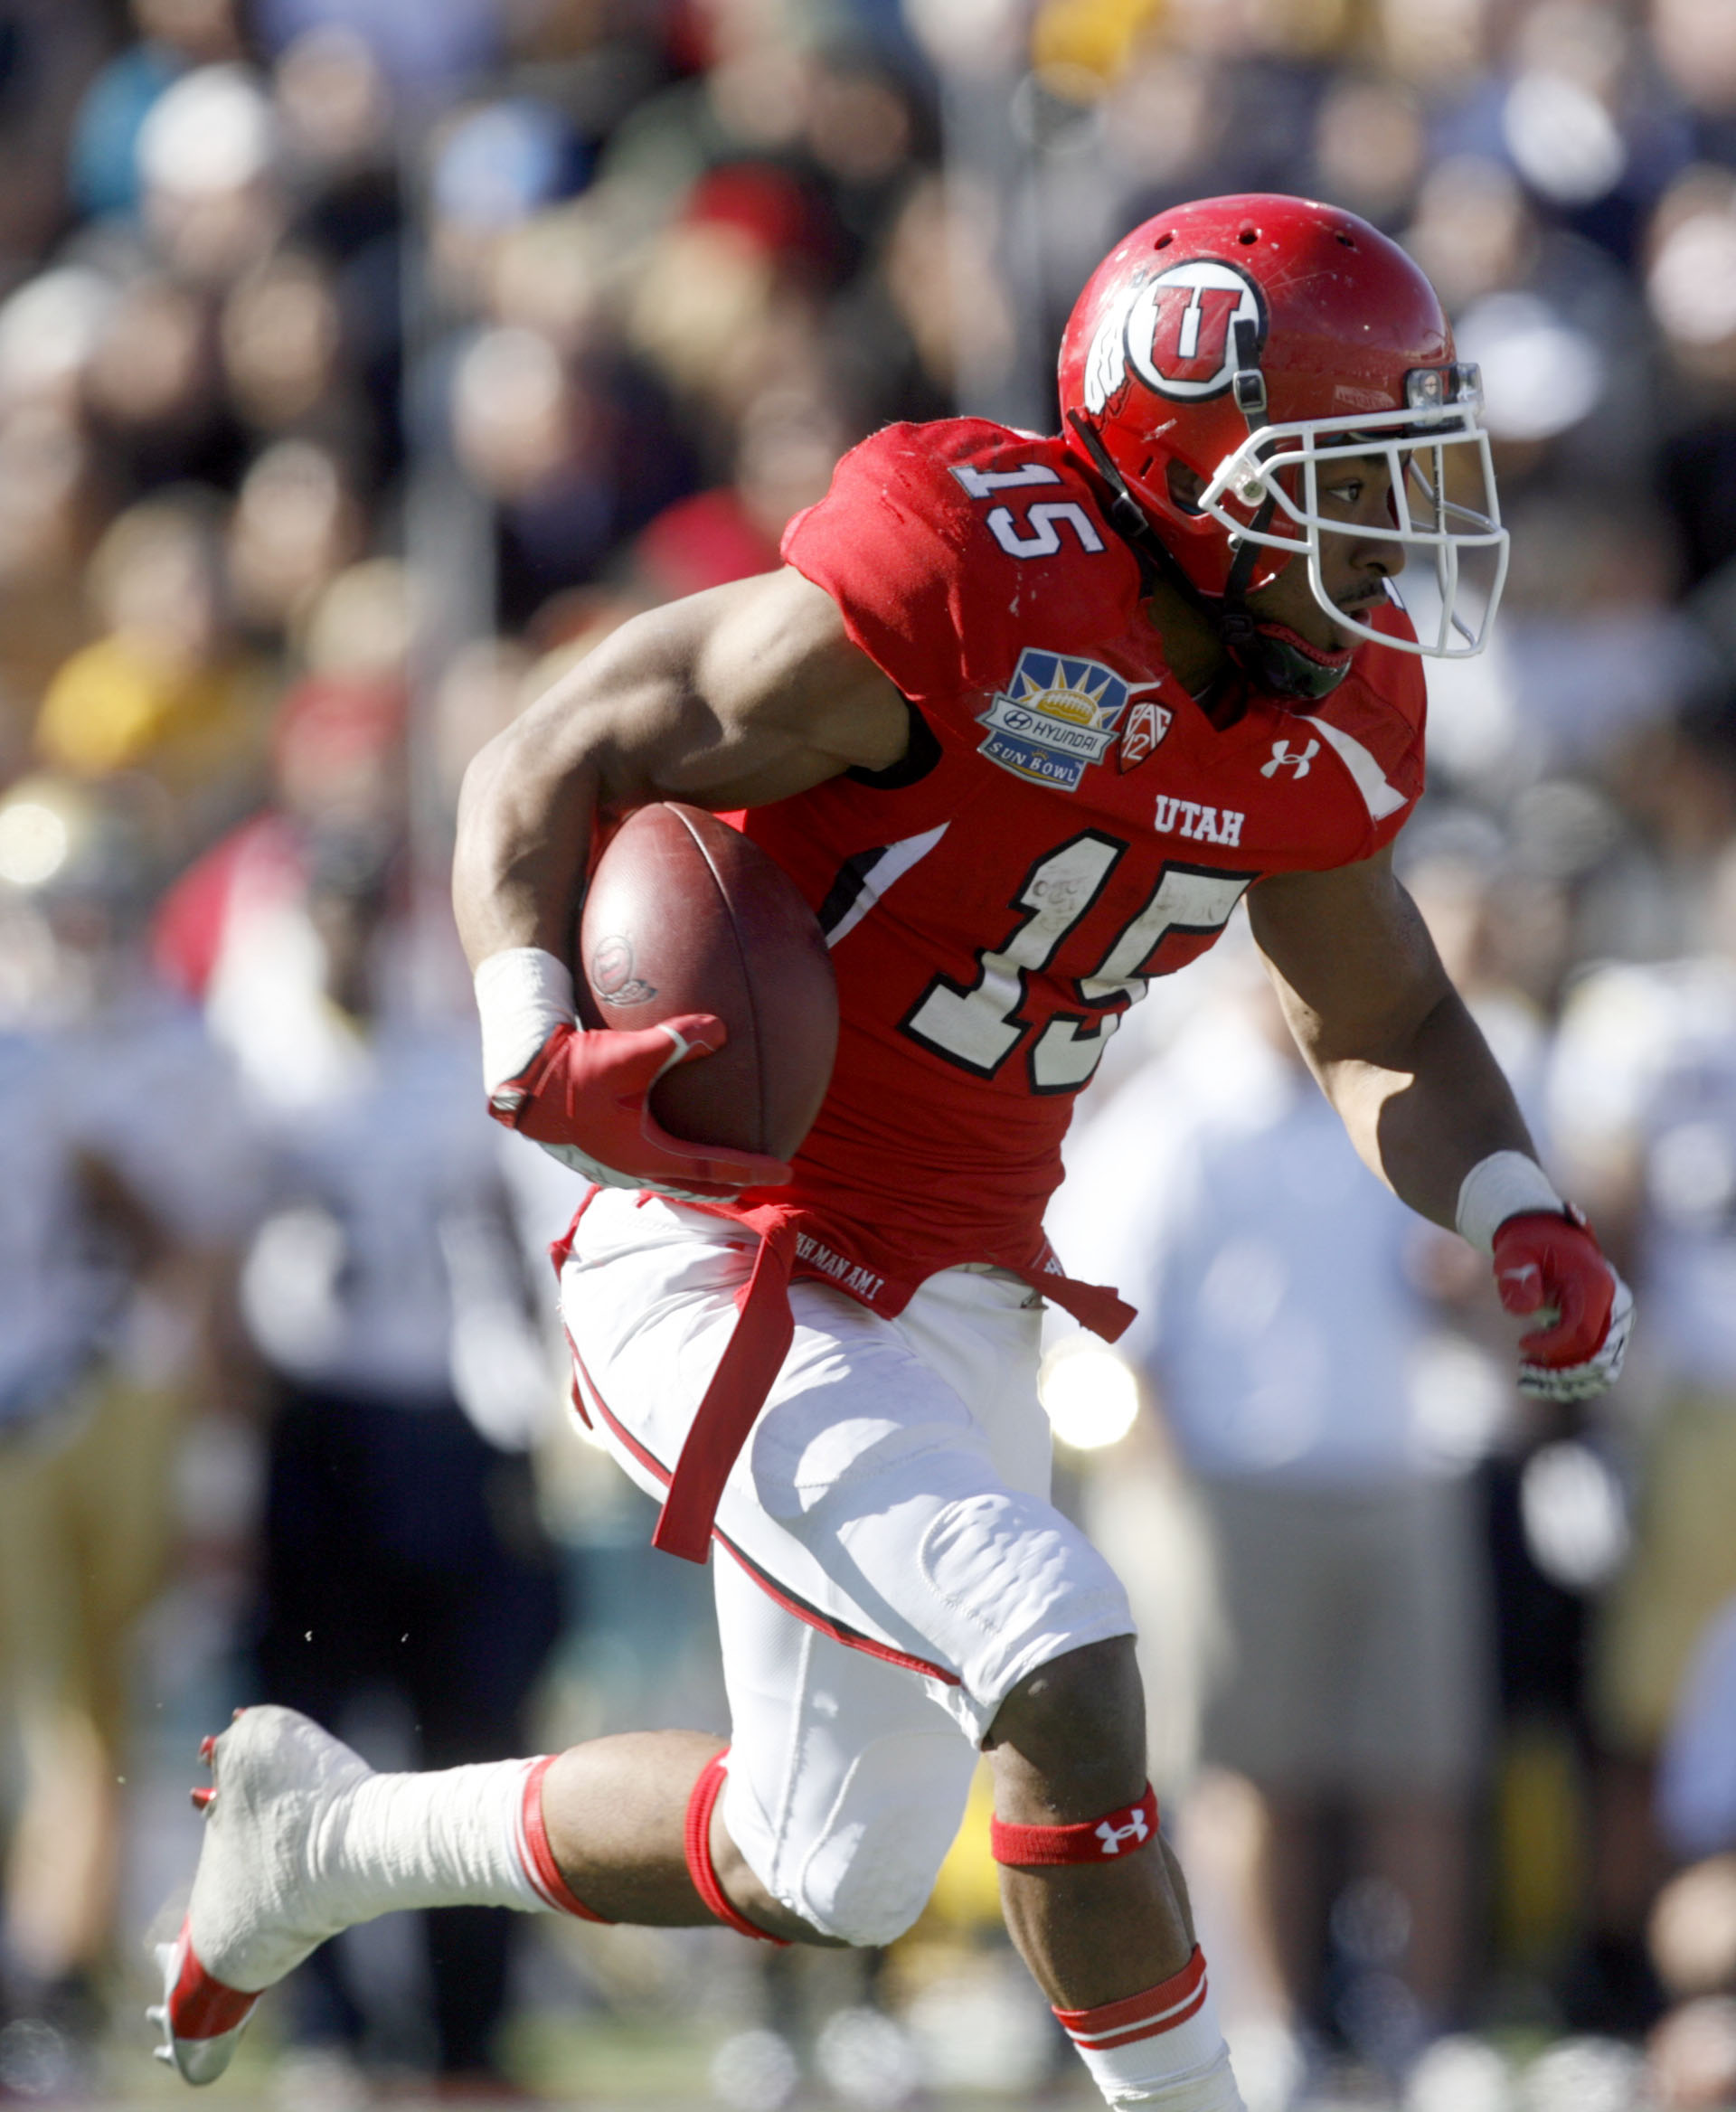 John White set a Utah single-season rushing record in 2011, his first season with the Utes. (AP)